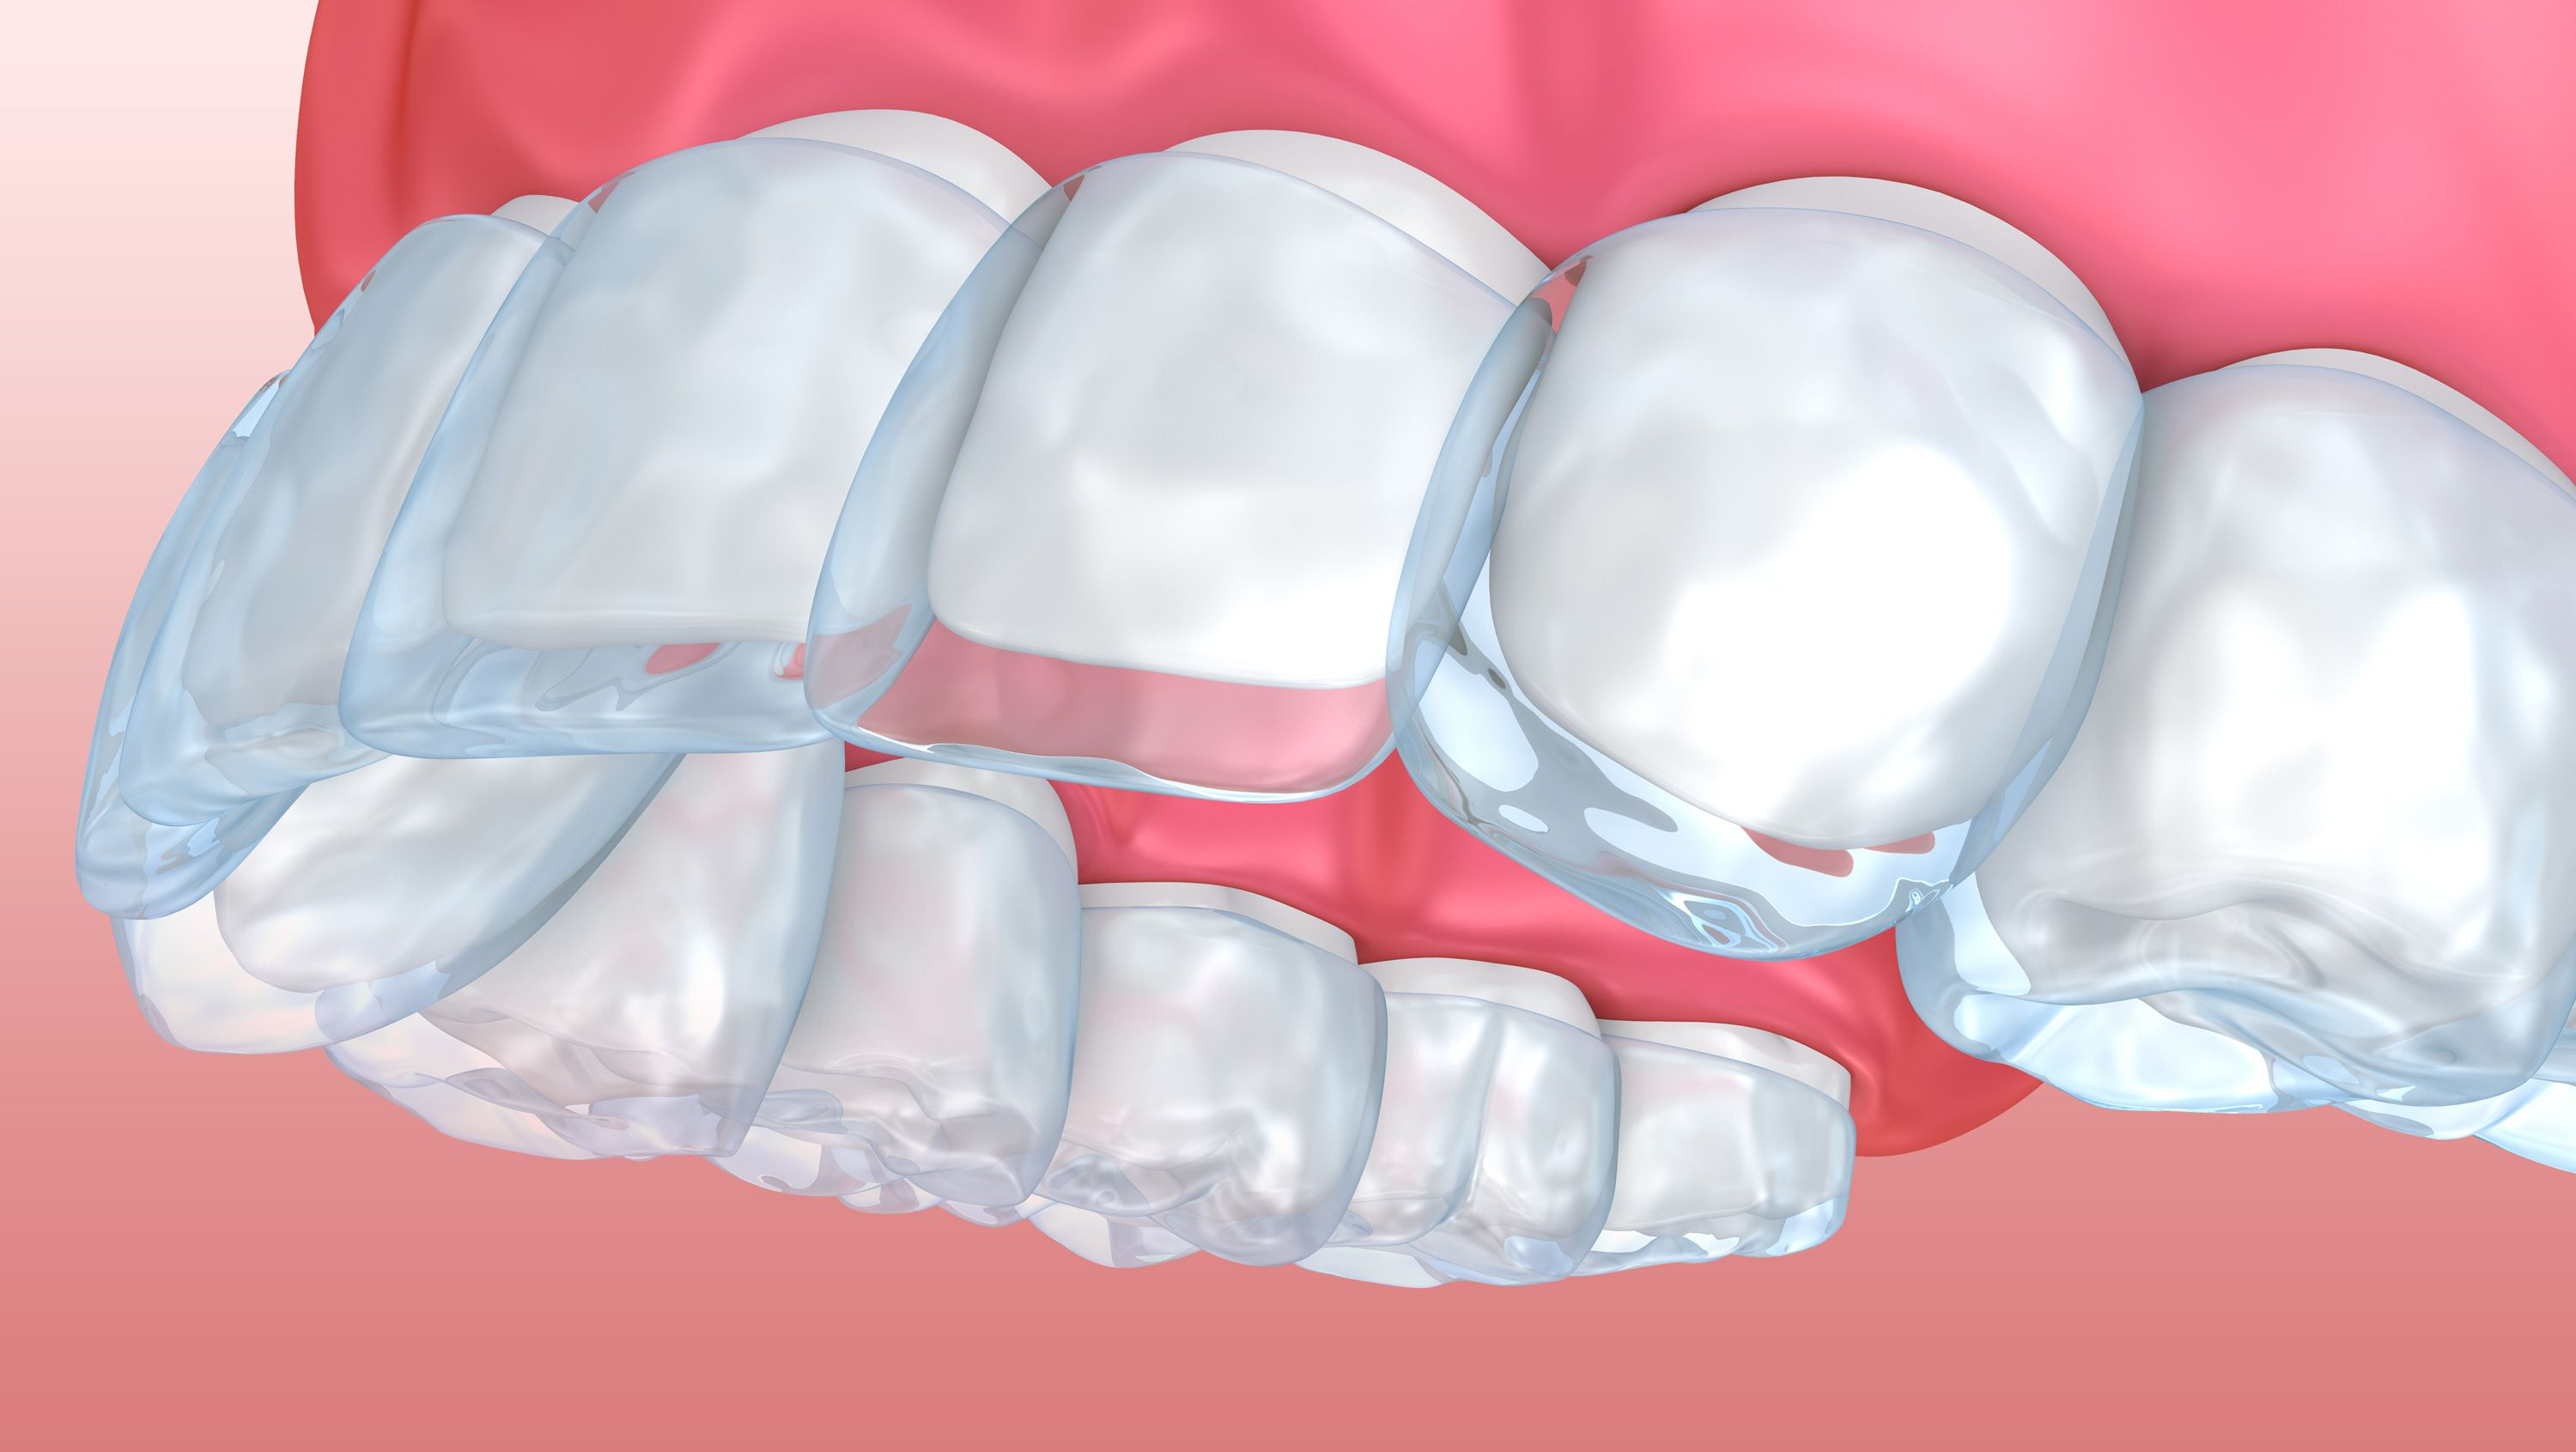 Illustration of an Invisalign aligner